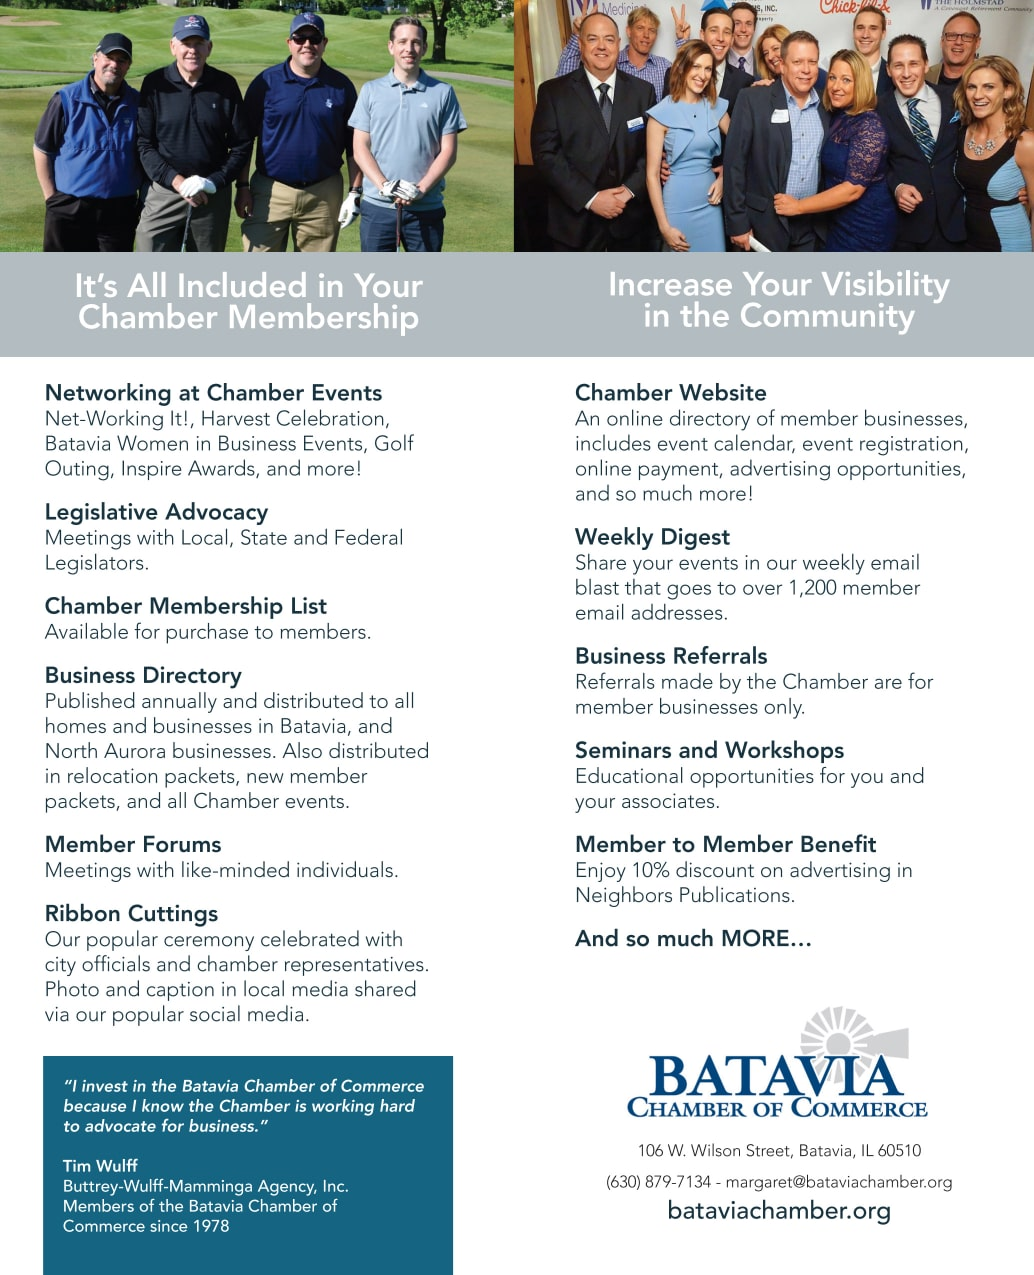 Batavia Chamber of Commerce Benefit Schedule Membership Benefits